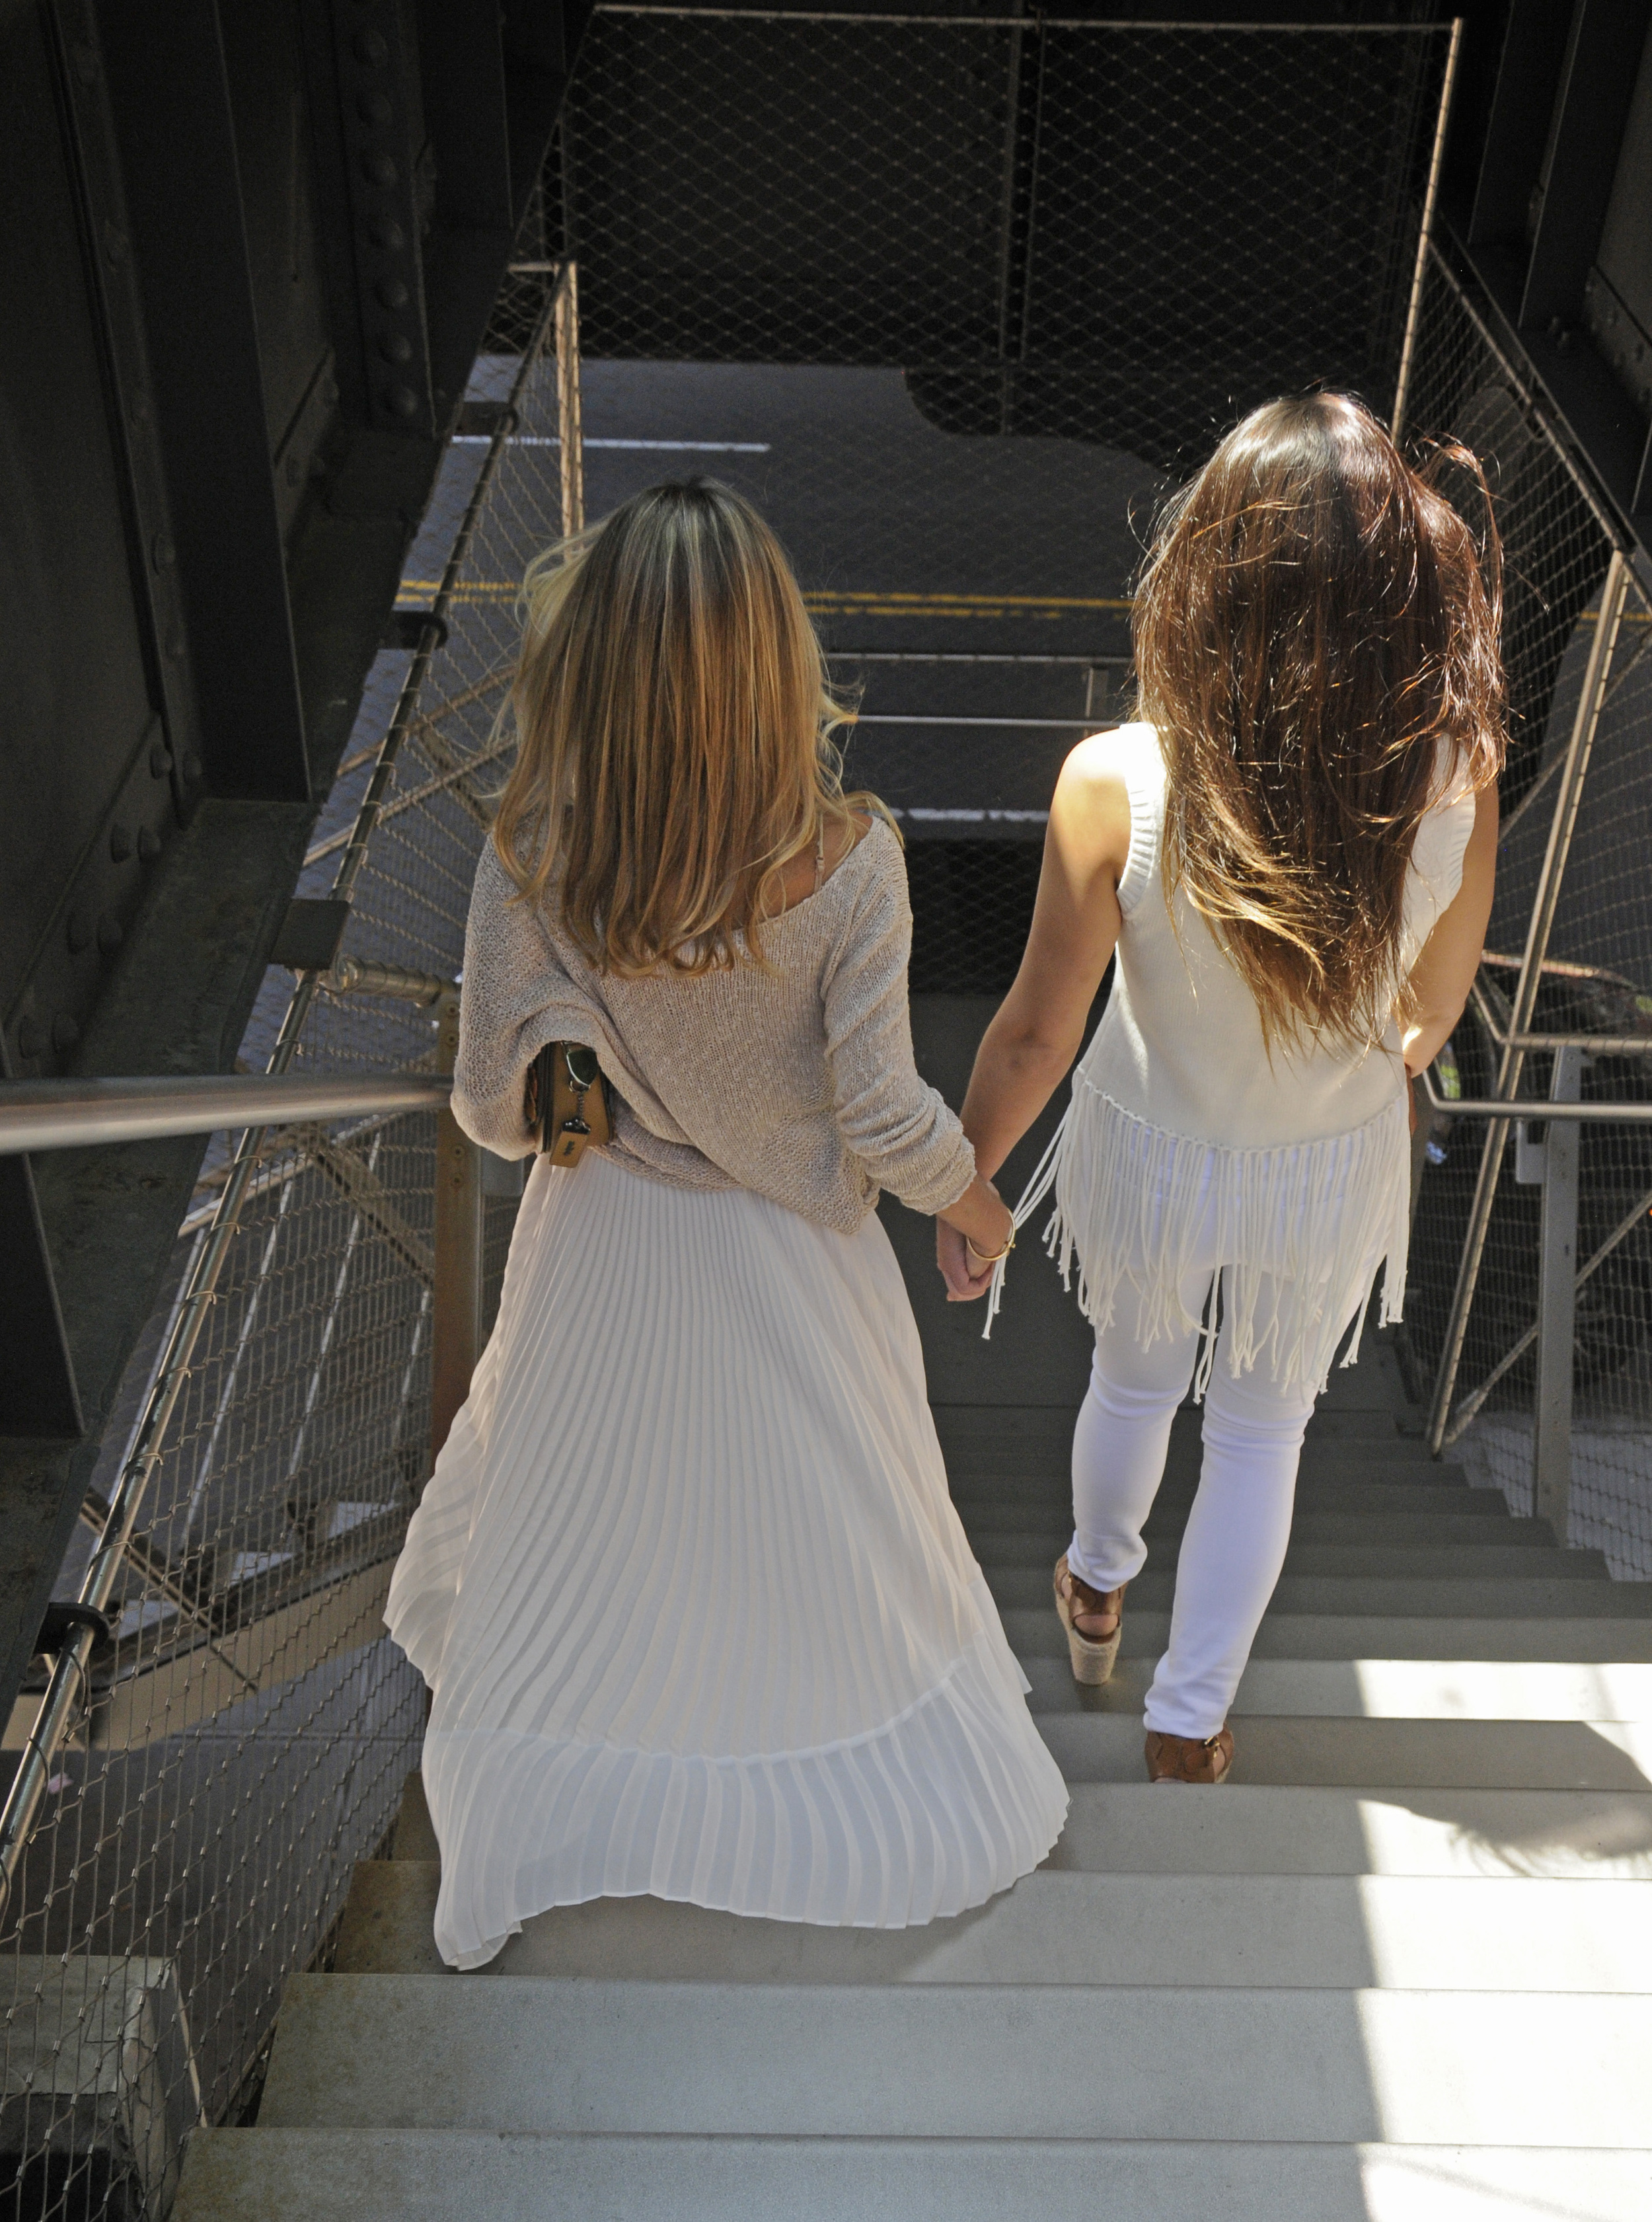 YIN 2MY YANG BICKLEY SISTERS STAIRS SISTER BLOGGERS